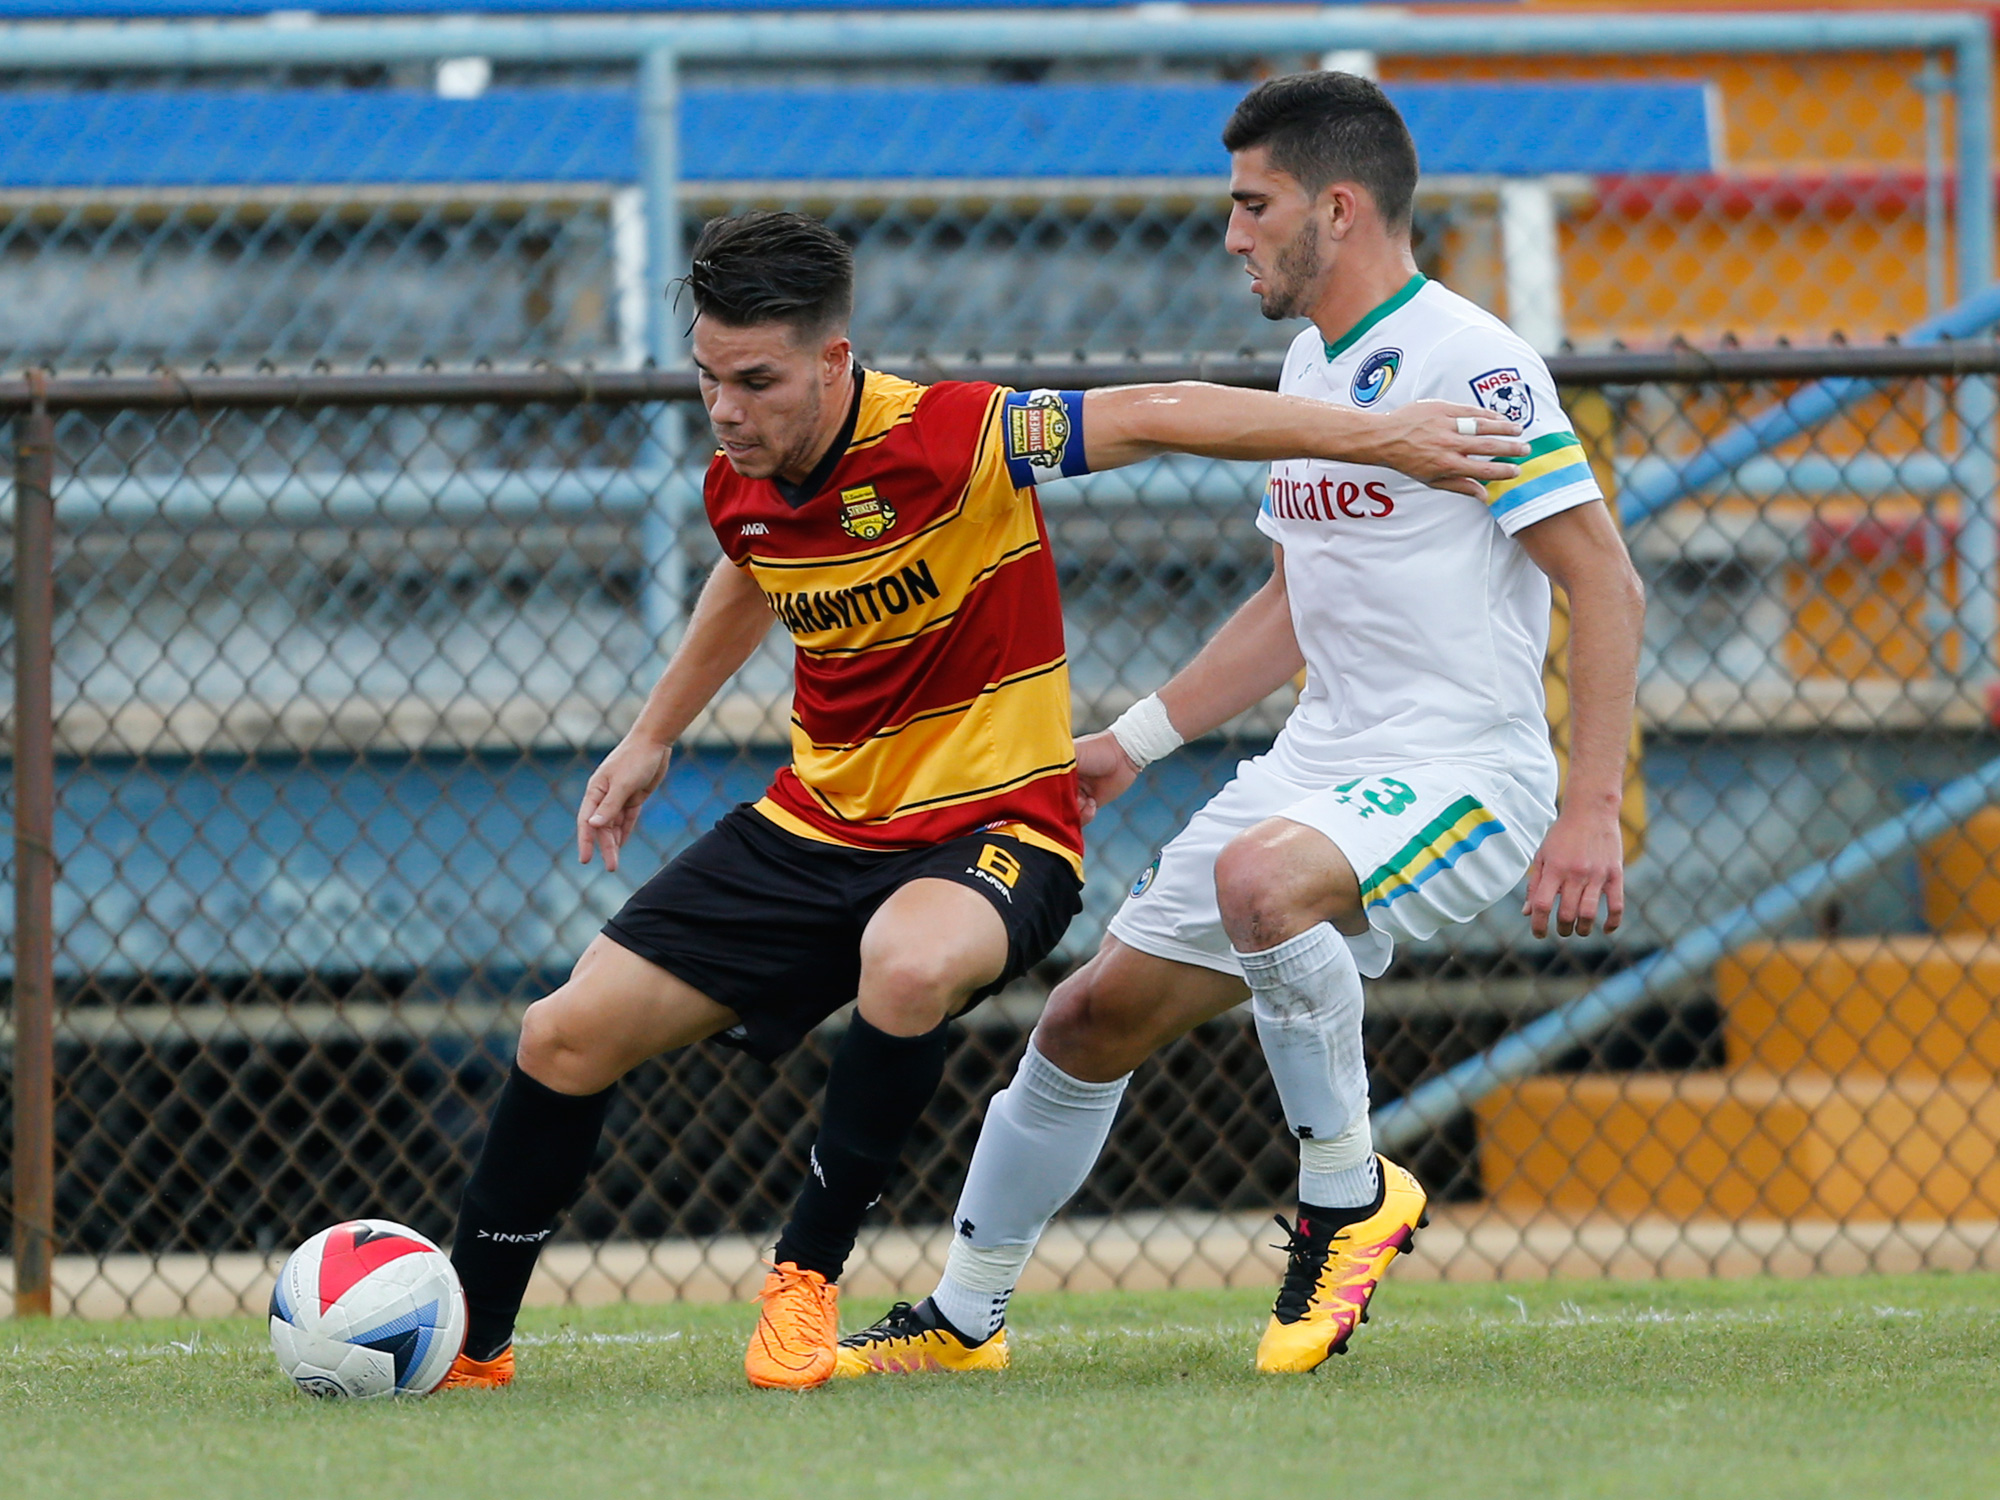 The Fort Lauderdale Strikers and New York Cosmos square off in an NASL match